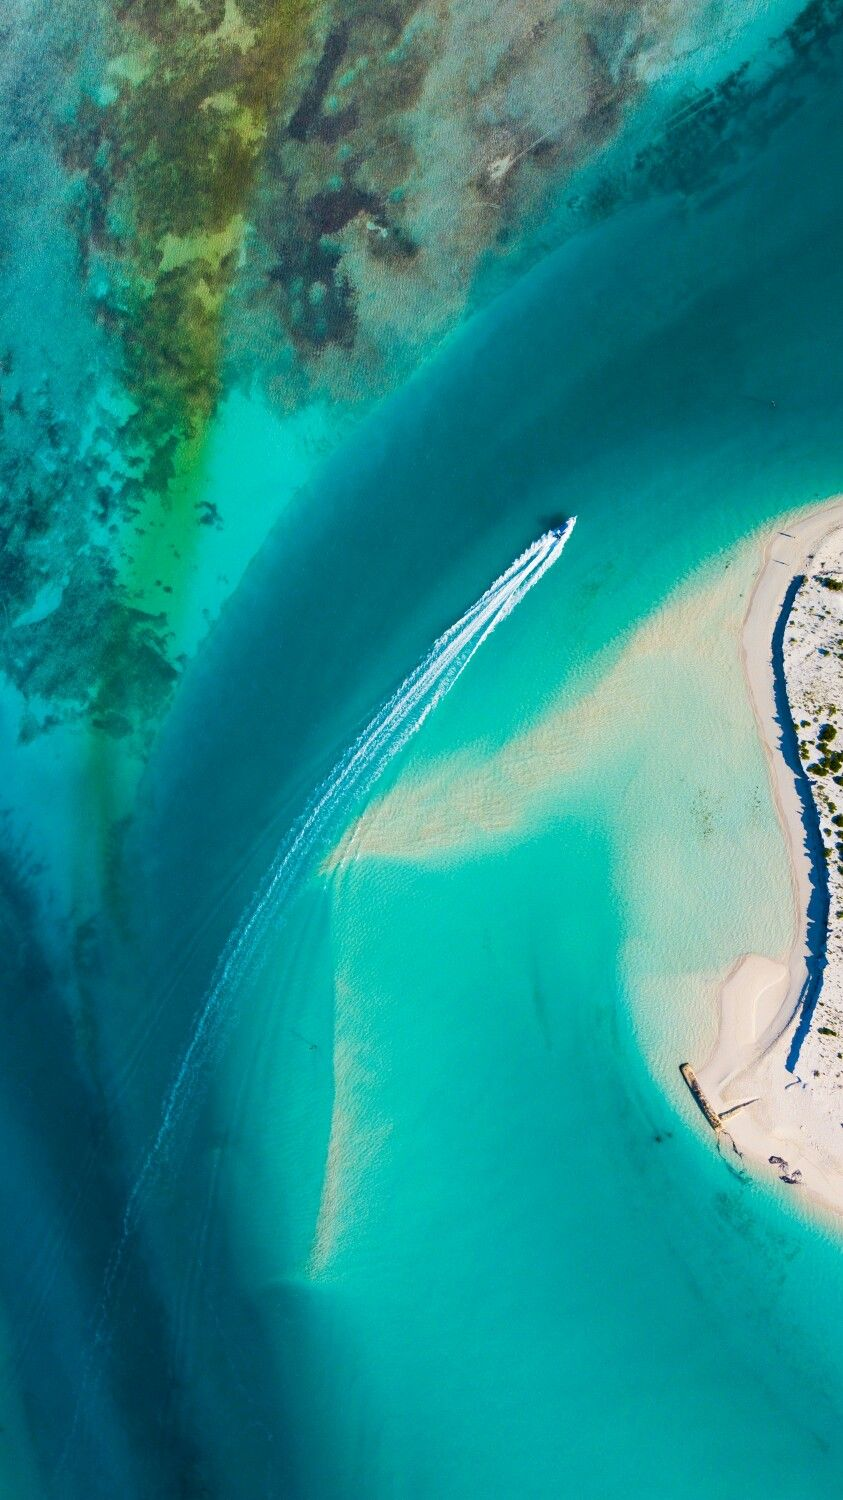 Pin By Anto Jimenez On Drones Photography Aerial Photography Drone Drone Photos Drone Photography